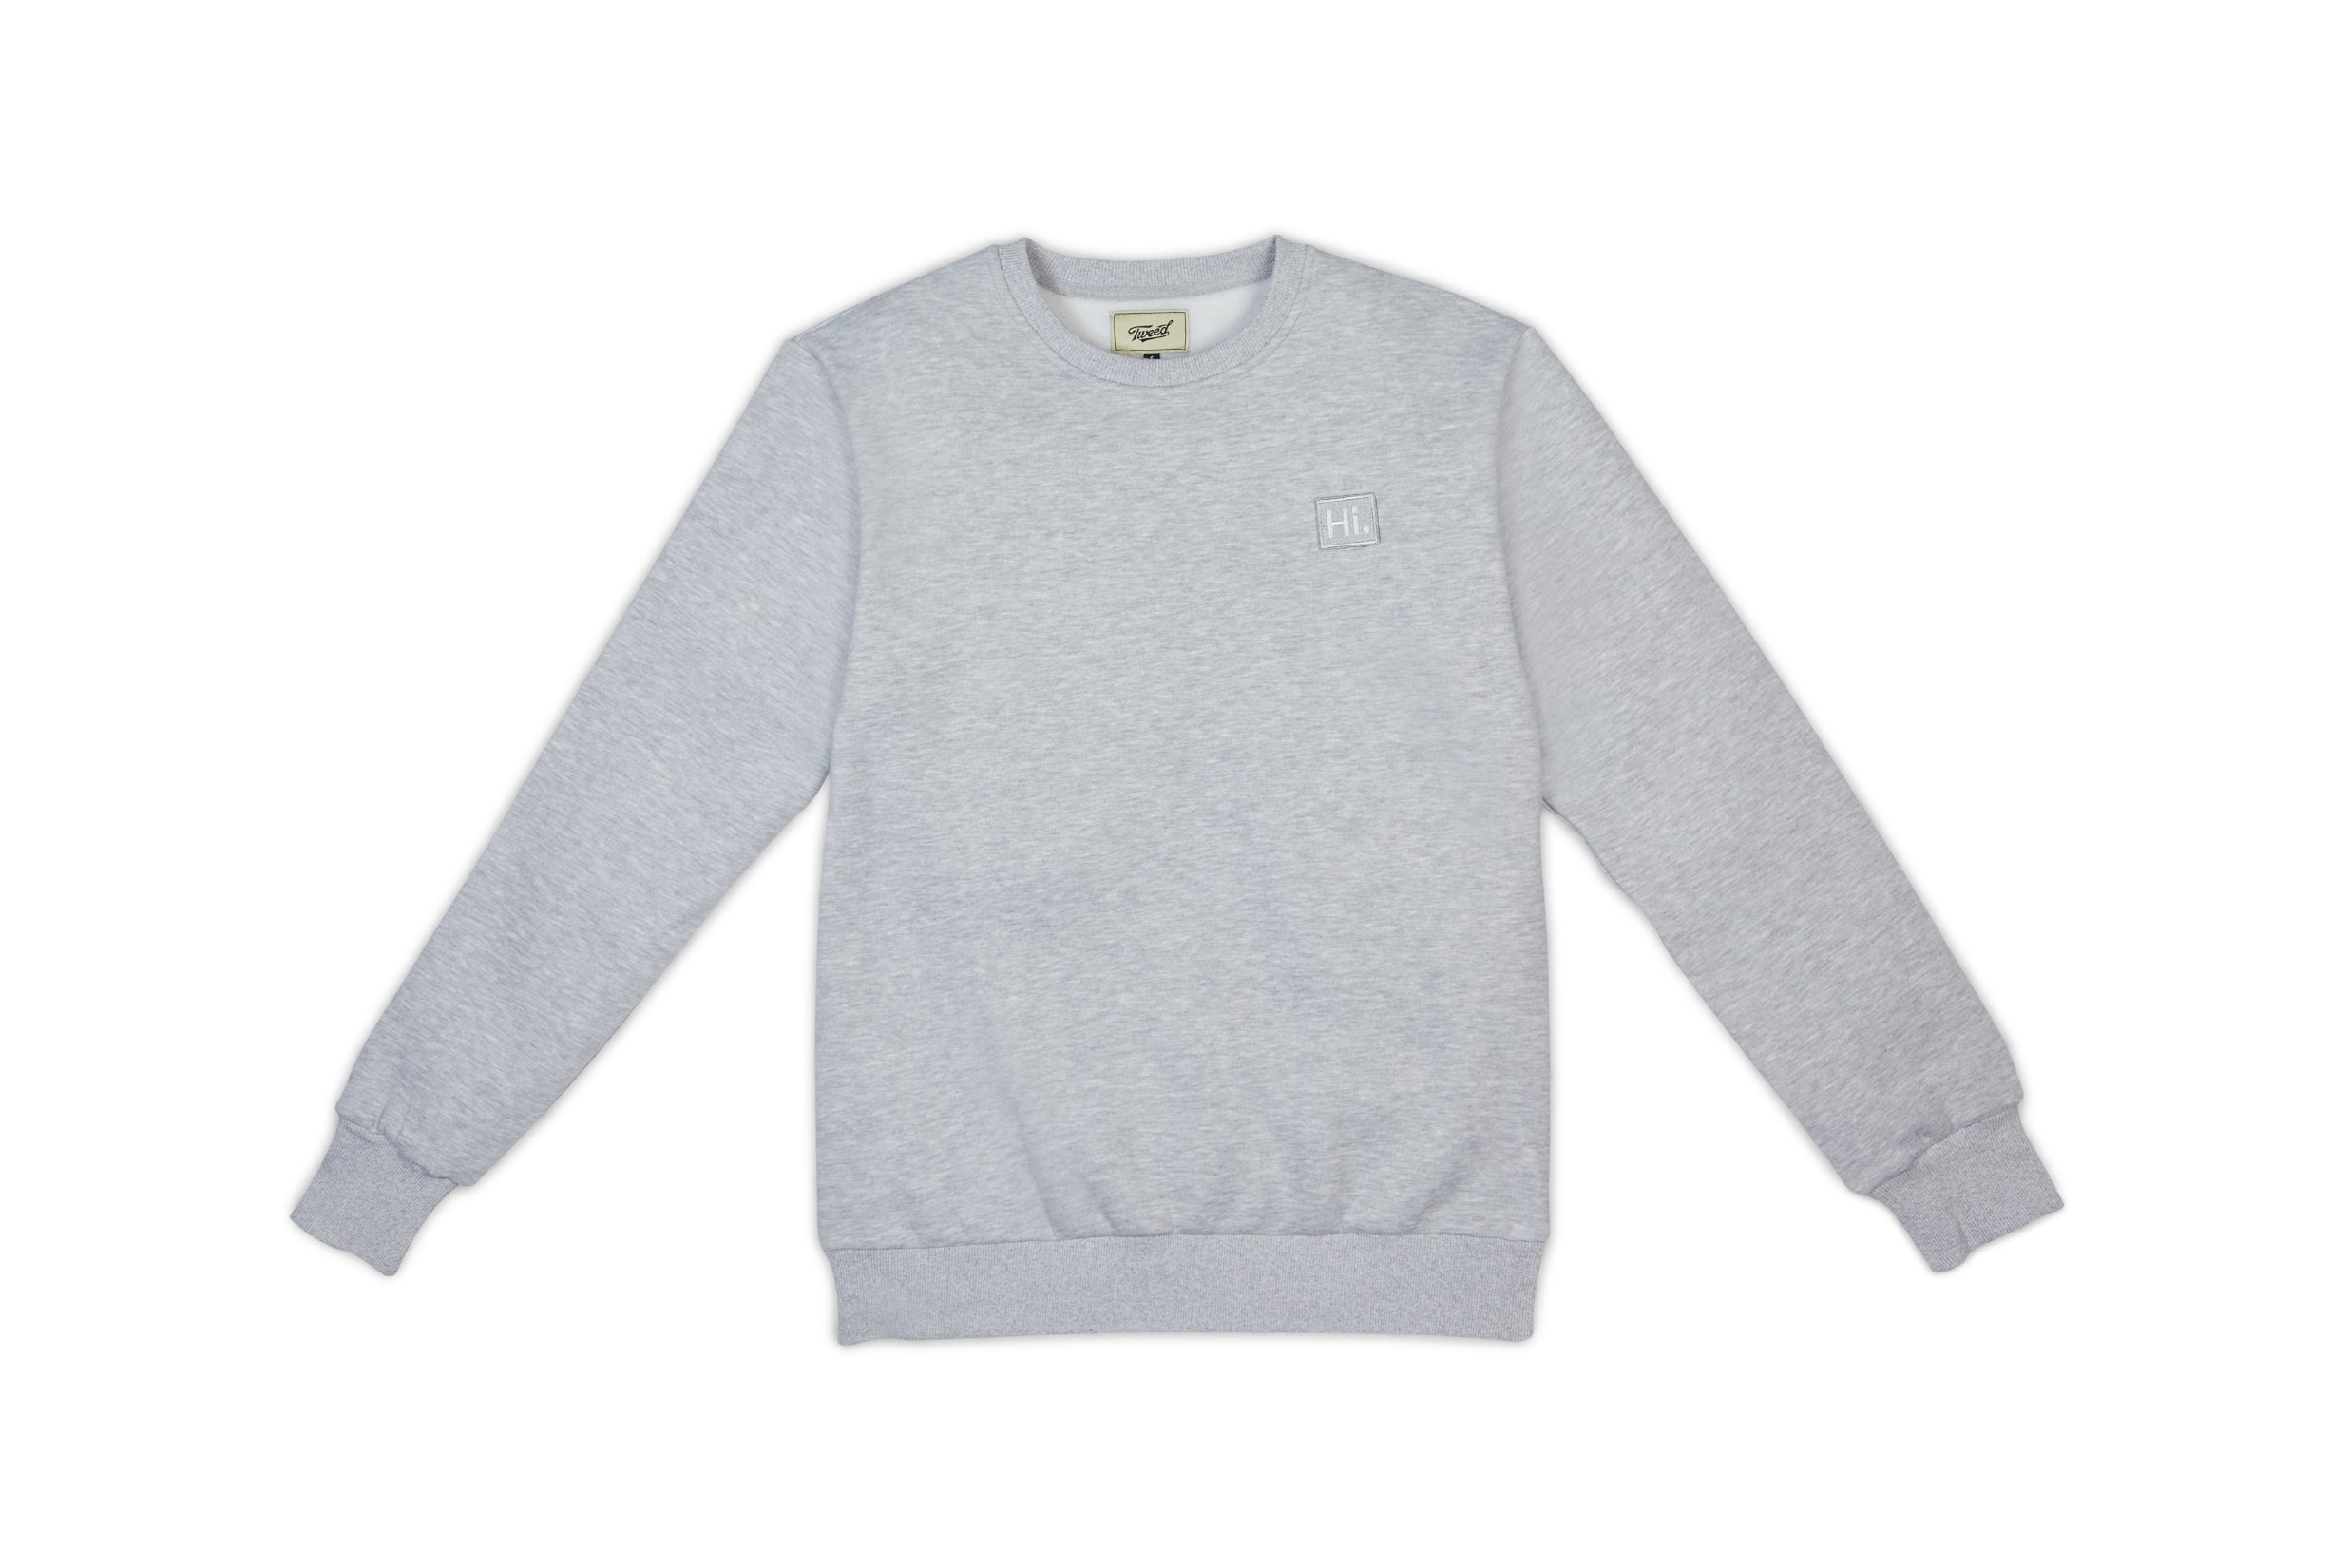 Tweed Hi Sweatshirt